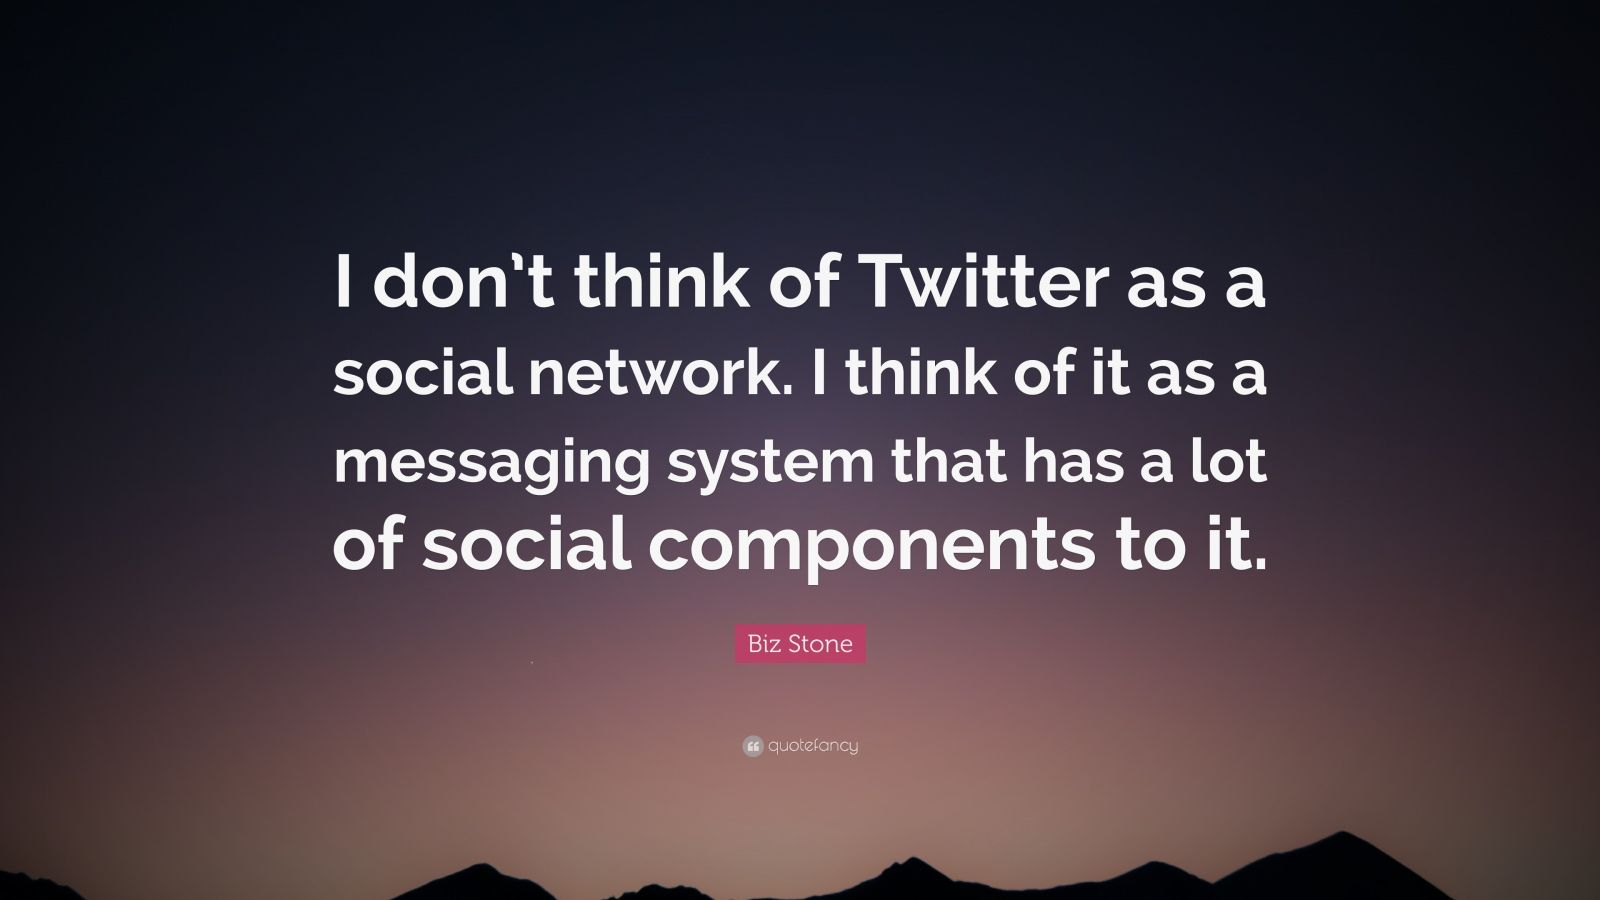 """Biz Stone Quote: """"I don't think of Twitter as a social network. I think of it as a messaging system that has a lot of social components to it."""""""